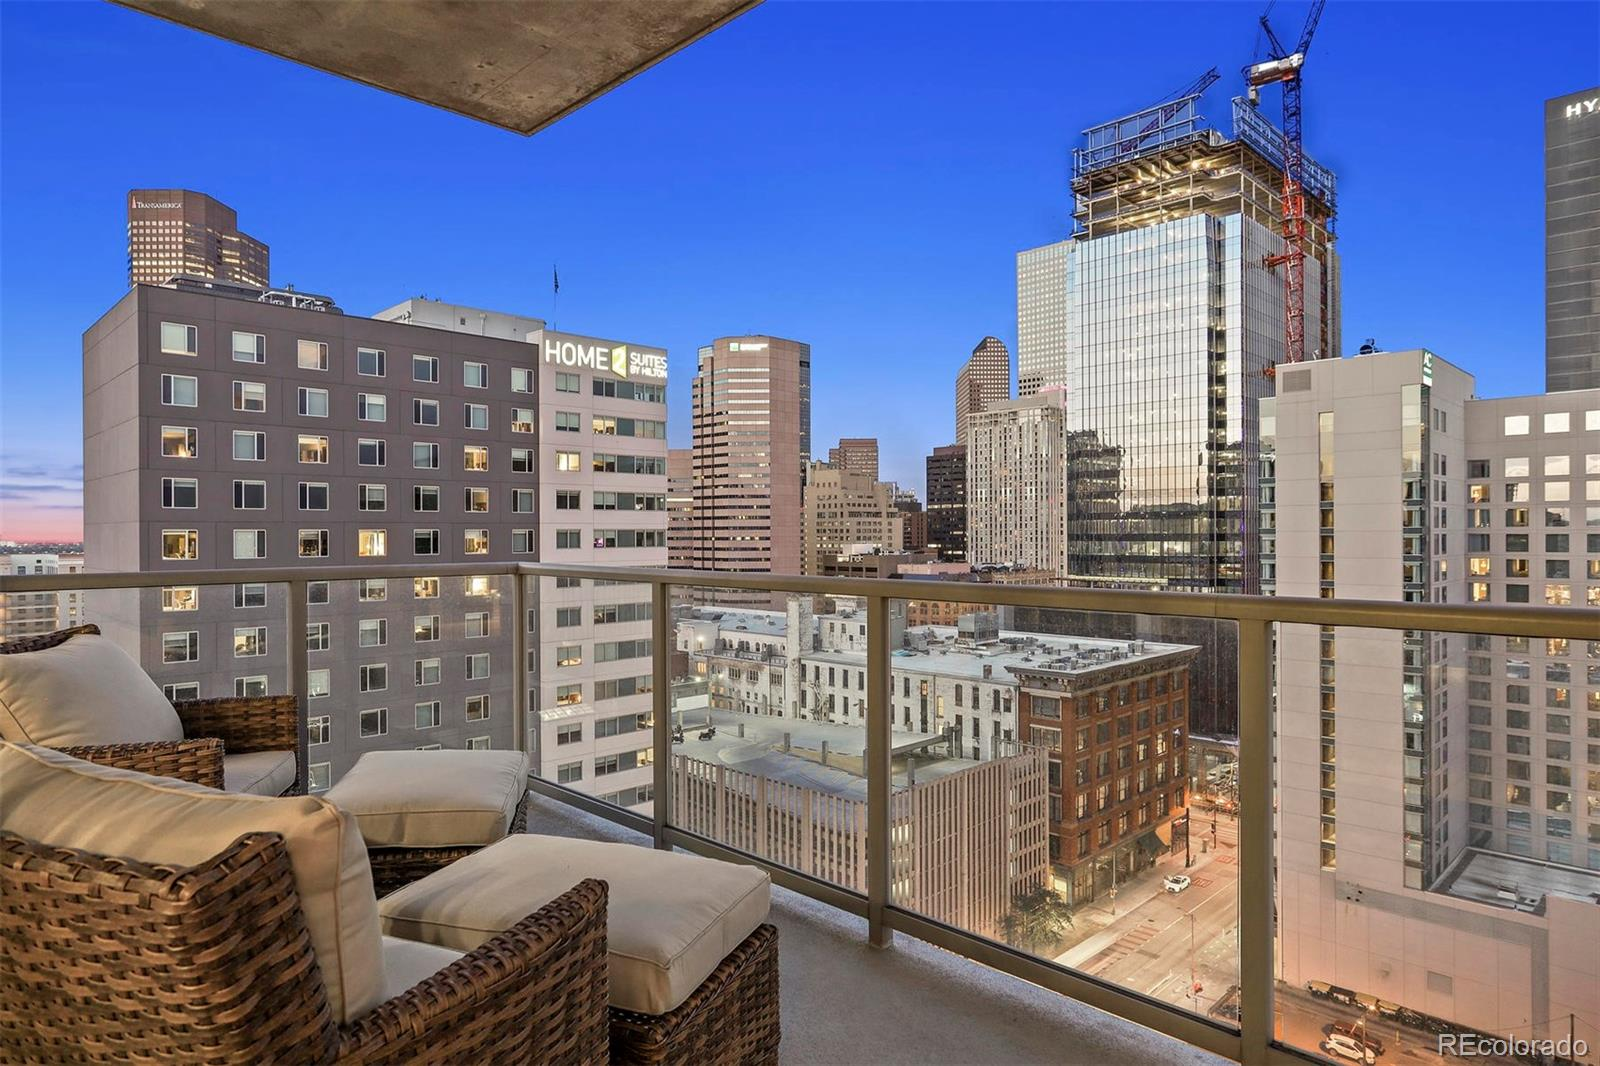 """POPULAR CORNER TREMONT FLOOR-PLAN AT ATTRACTIVE PRICE - BEST PRICE OF ANY """"09"""" UNIT & INCLUDES 2 PARKING SPACES! Enjoy the View of Downtown Denver's City Skyline from this Gorgeous Light-Filled Space.  The East Facing Balcony Allows You to Take In the Morning Sun and Relax in Comfort in the Evenings. New Paint Throughout! Beautifully Maintained with Newer Improvements within the last 3-5 yrs to Include: Oak Hardwood Floors Throughout, Updated LED Lighting, Classy Built-In Media Unit at Living Room and Office with Backlit LED Lighting, Kitchler Ceiling Fans, Upgraded Grohe Faucets & Water Saving Toilets, Two New Heat Pumps, Nest Thermostats and Window Treatments with Blackout in Master & Office/Bedroom. The Kitchen Features Newer Granite Counter Tops & Glass Backsplash with Custom Pull-Out Shelving, Updated LED Overhead and Under Cabinet Lighting, New Bosch Induction Stove/Oven, New Miele Dishwasher, Newer Refrigerator. Privately Situated Master Suite with 5 pc Bath & Walk-In Closet. The Office/2nd Bedroom is Versatile for Home Office and Guest Bedroom with Murphy Bed. Ample Closet Space in All Rooms which is Maximized by the Custom Closets & Pull-Out Shelving. Deeded Parking Spaces are Wide & Close to Elevator for Easy Access. Large Storage Unit. LEED Certified Building with Sought After Amenities Include: Roof-Top Heated Year Round Pool, Hot-Tub, Fitness Center, Theater Area, Lounge, Outdoor Grill, Dog Park, Guest Suites, Electric Charging Stations and 24-Hour Concierge Desk. Fast Internet Now with 1-gig Installation Underway to Each Unit!"""